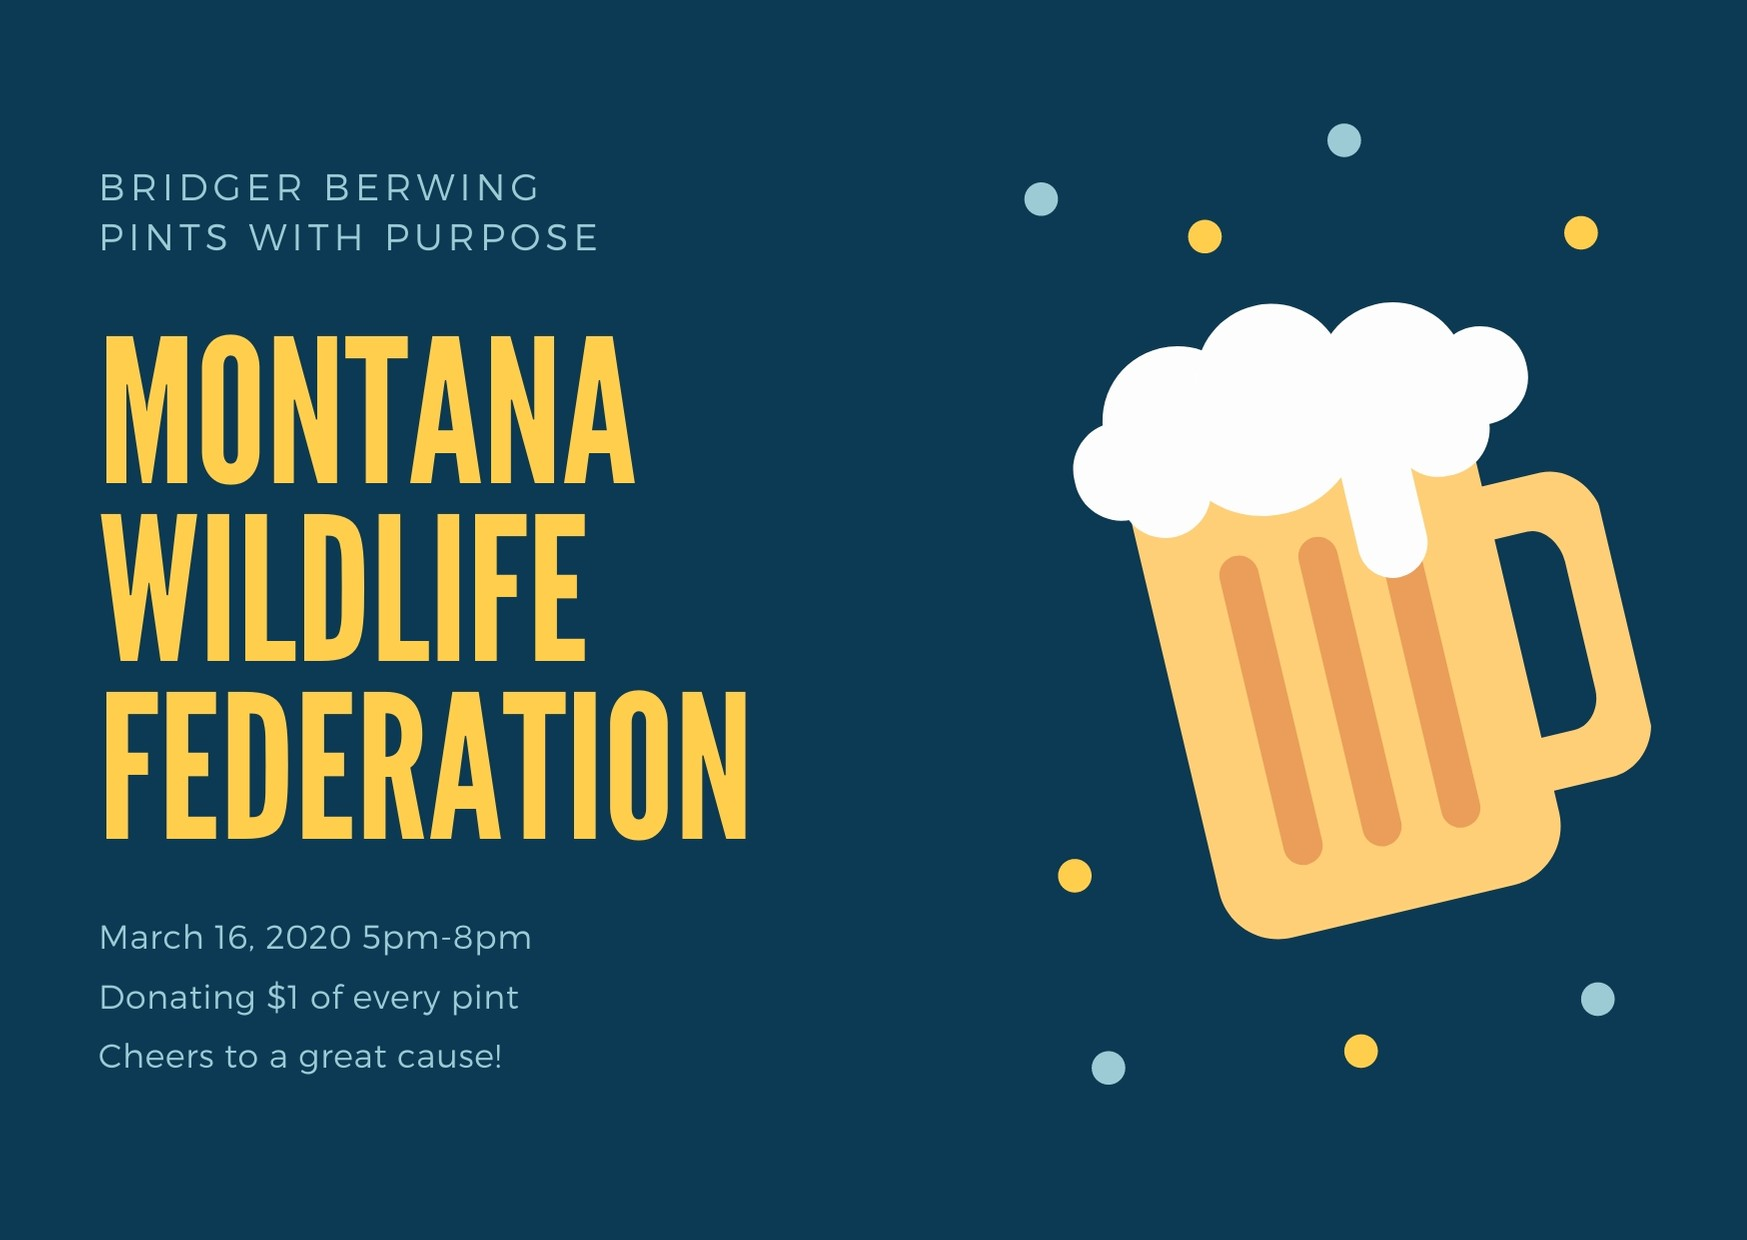 Pints with Purpose · Montana Wildlife Federation